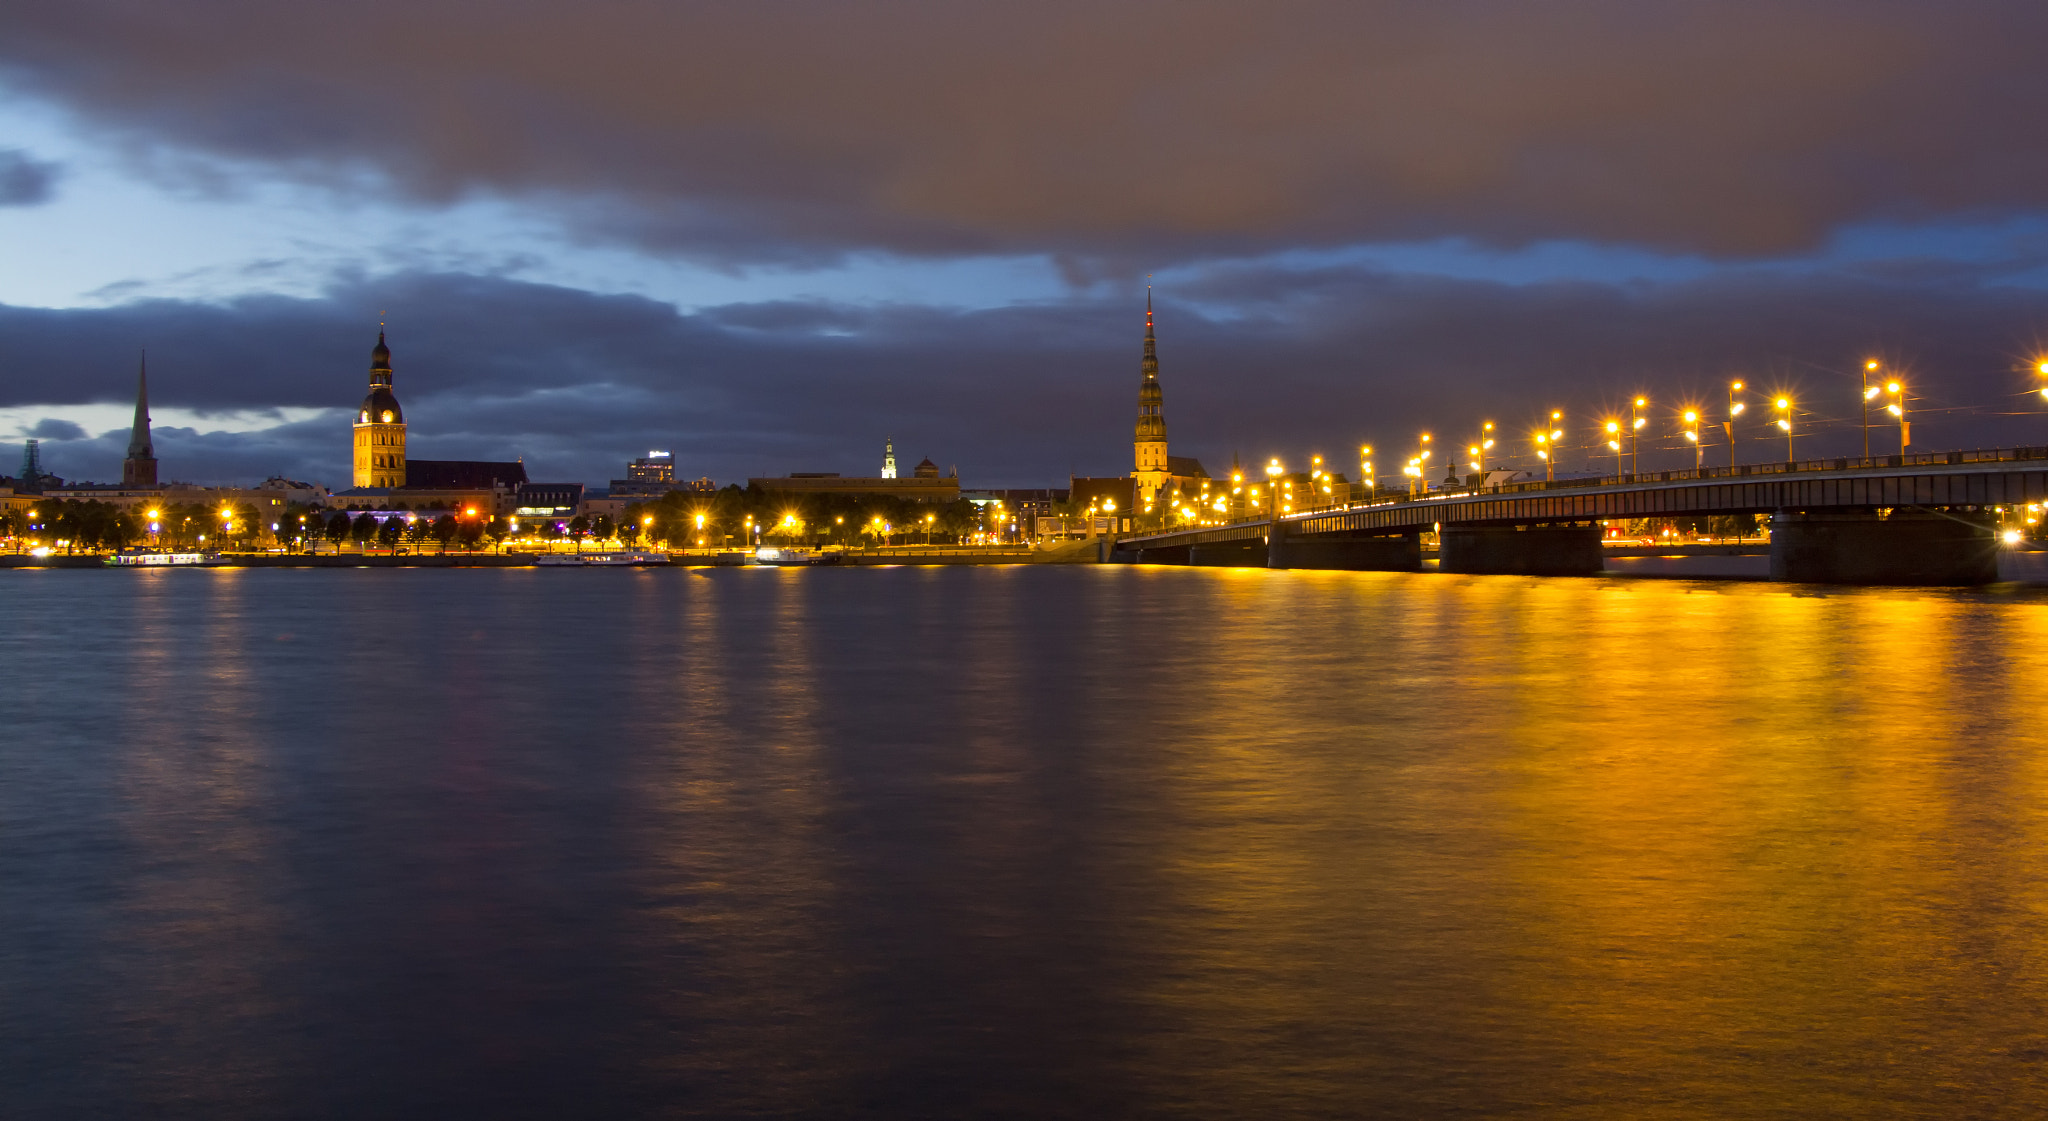 Photograph Riga, Latvia by disbag on 500px